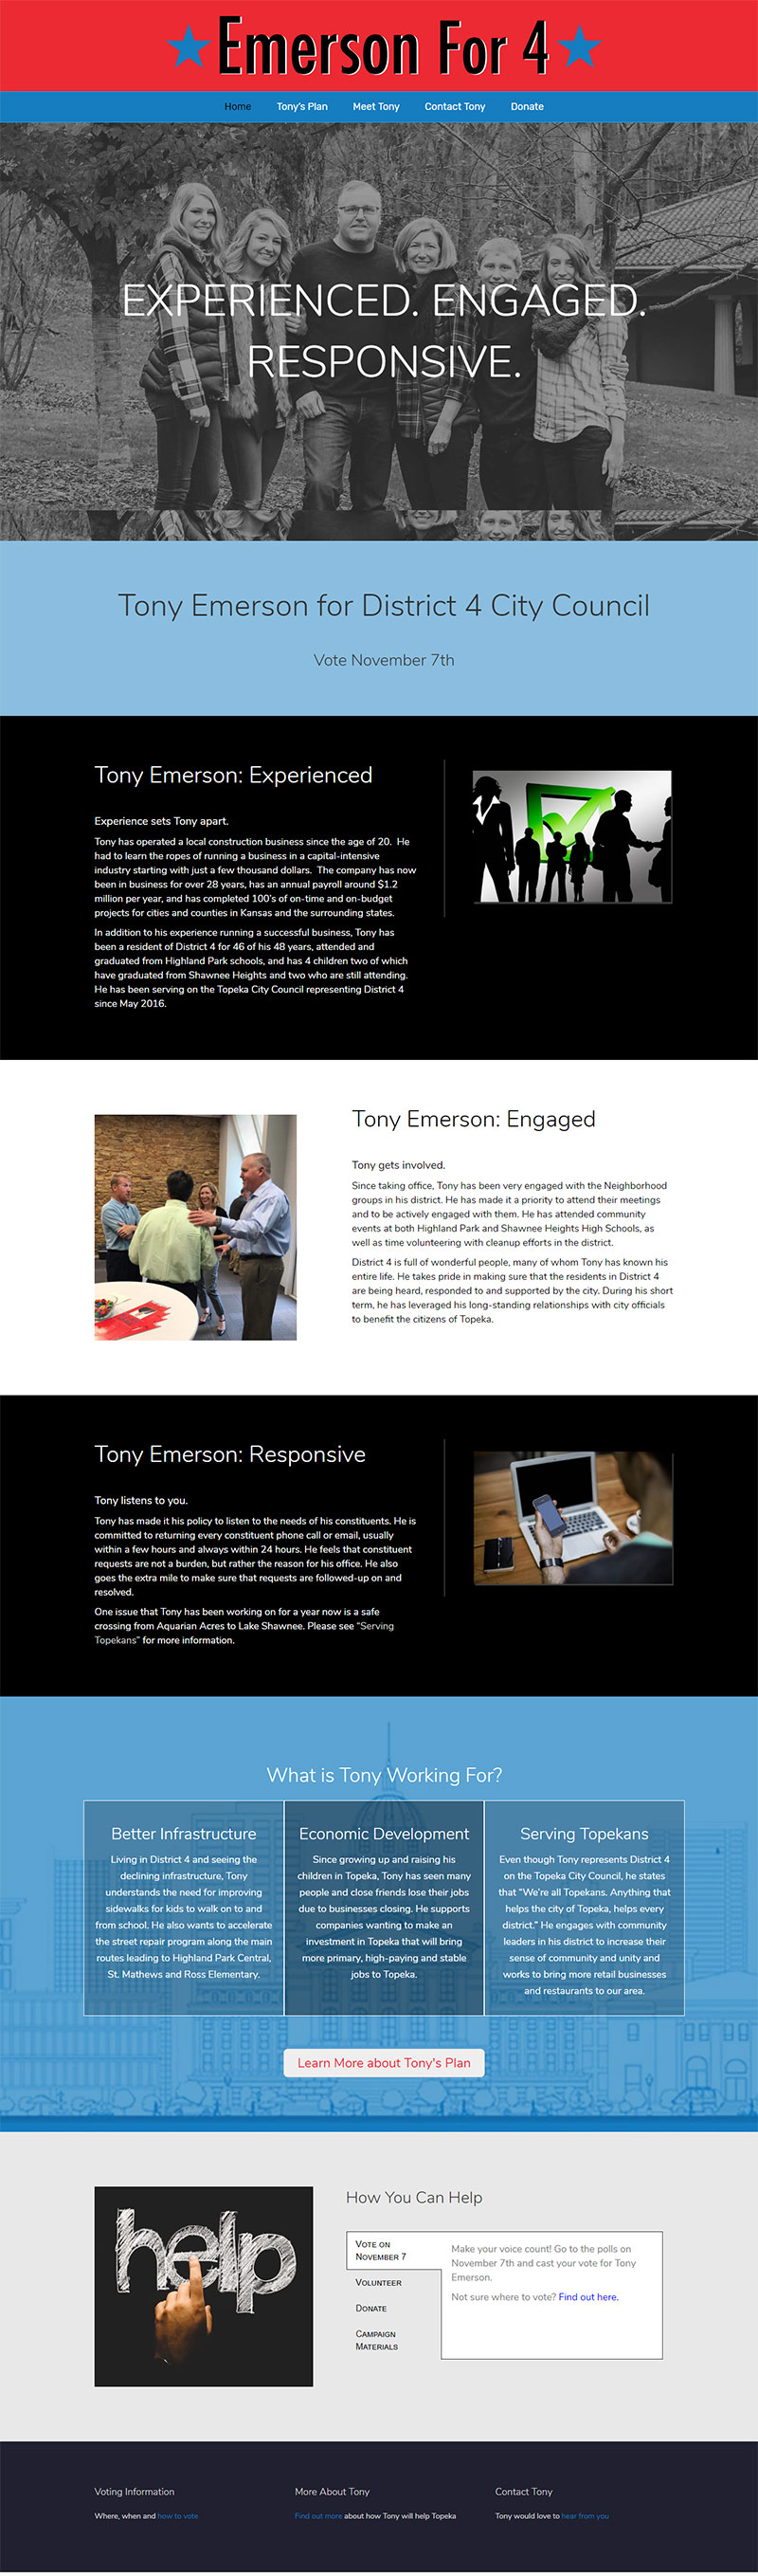 emerson-new-site-homepage-800x2717